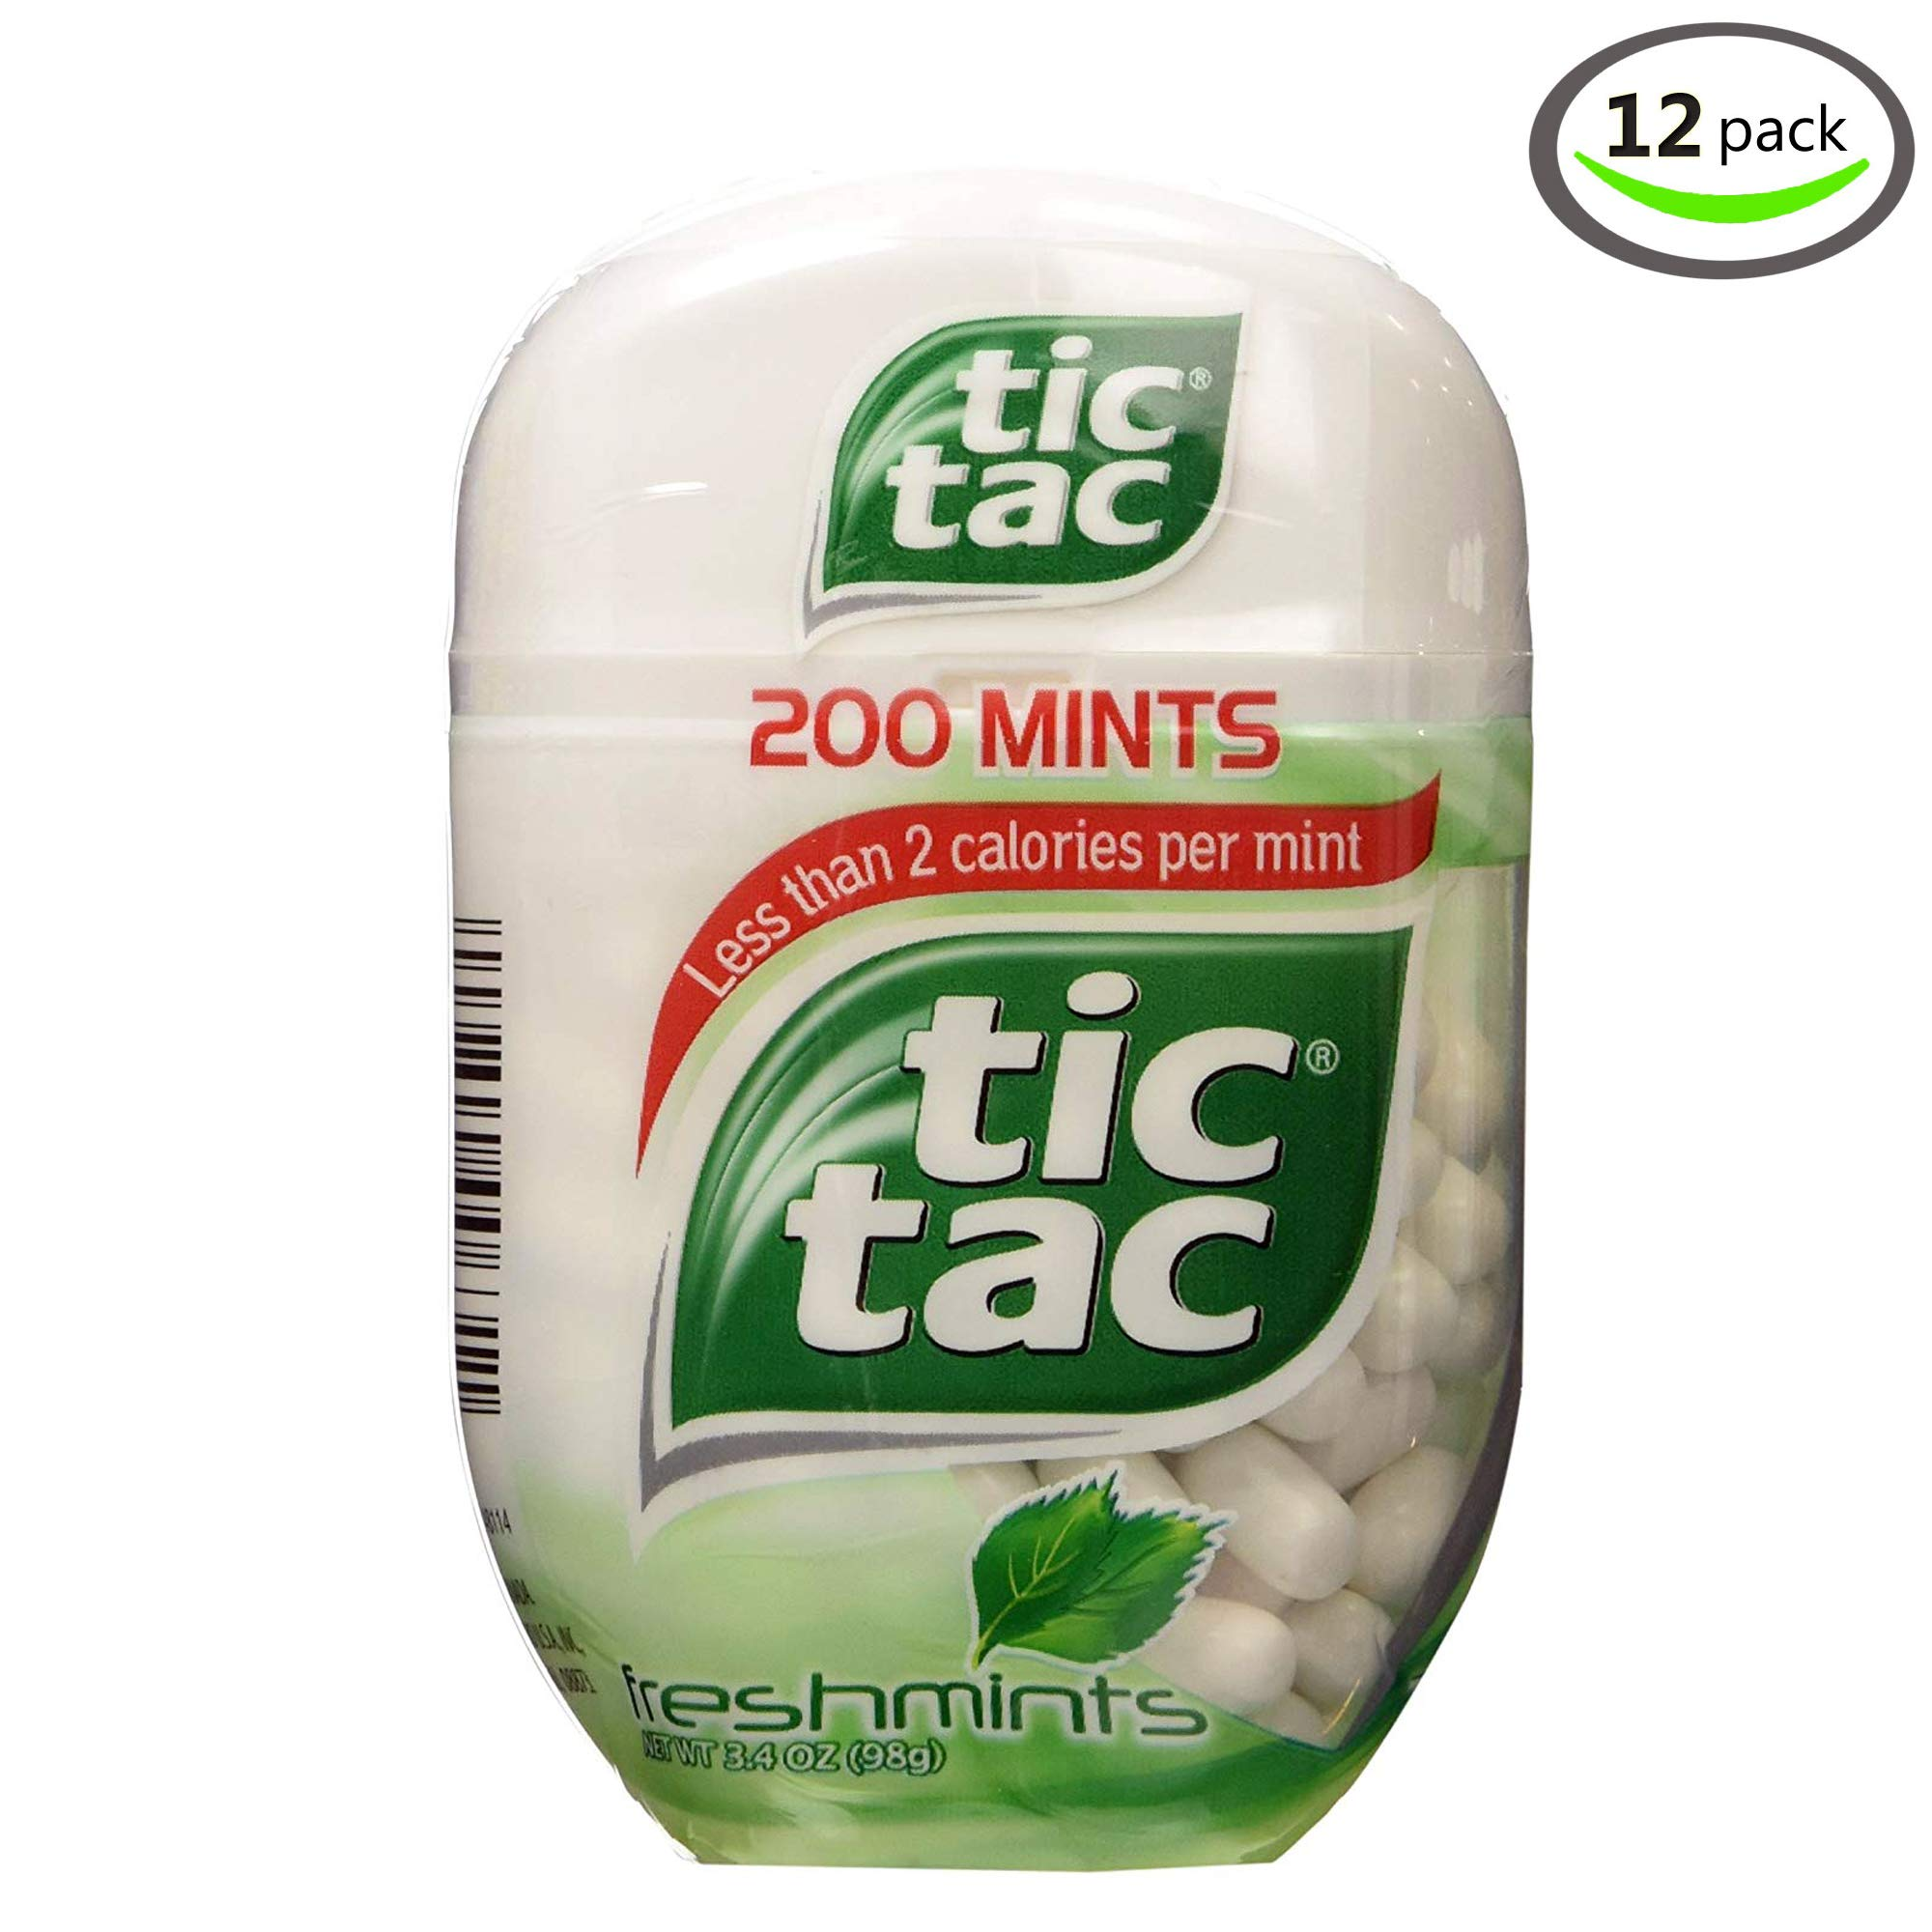 Tic Tac Fresh Mint Bottle 3.4 oz - Pack of 12 by Tic Tac